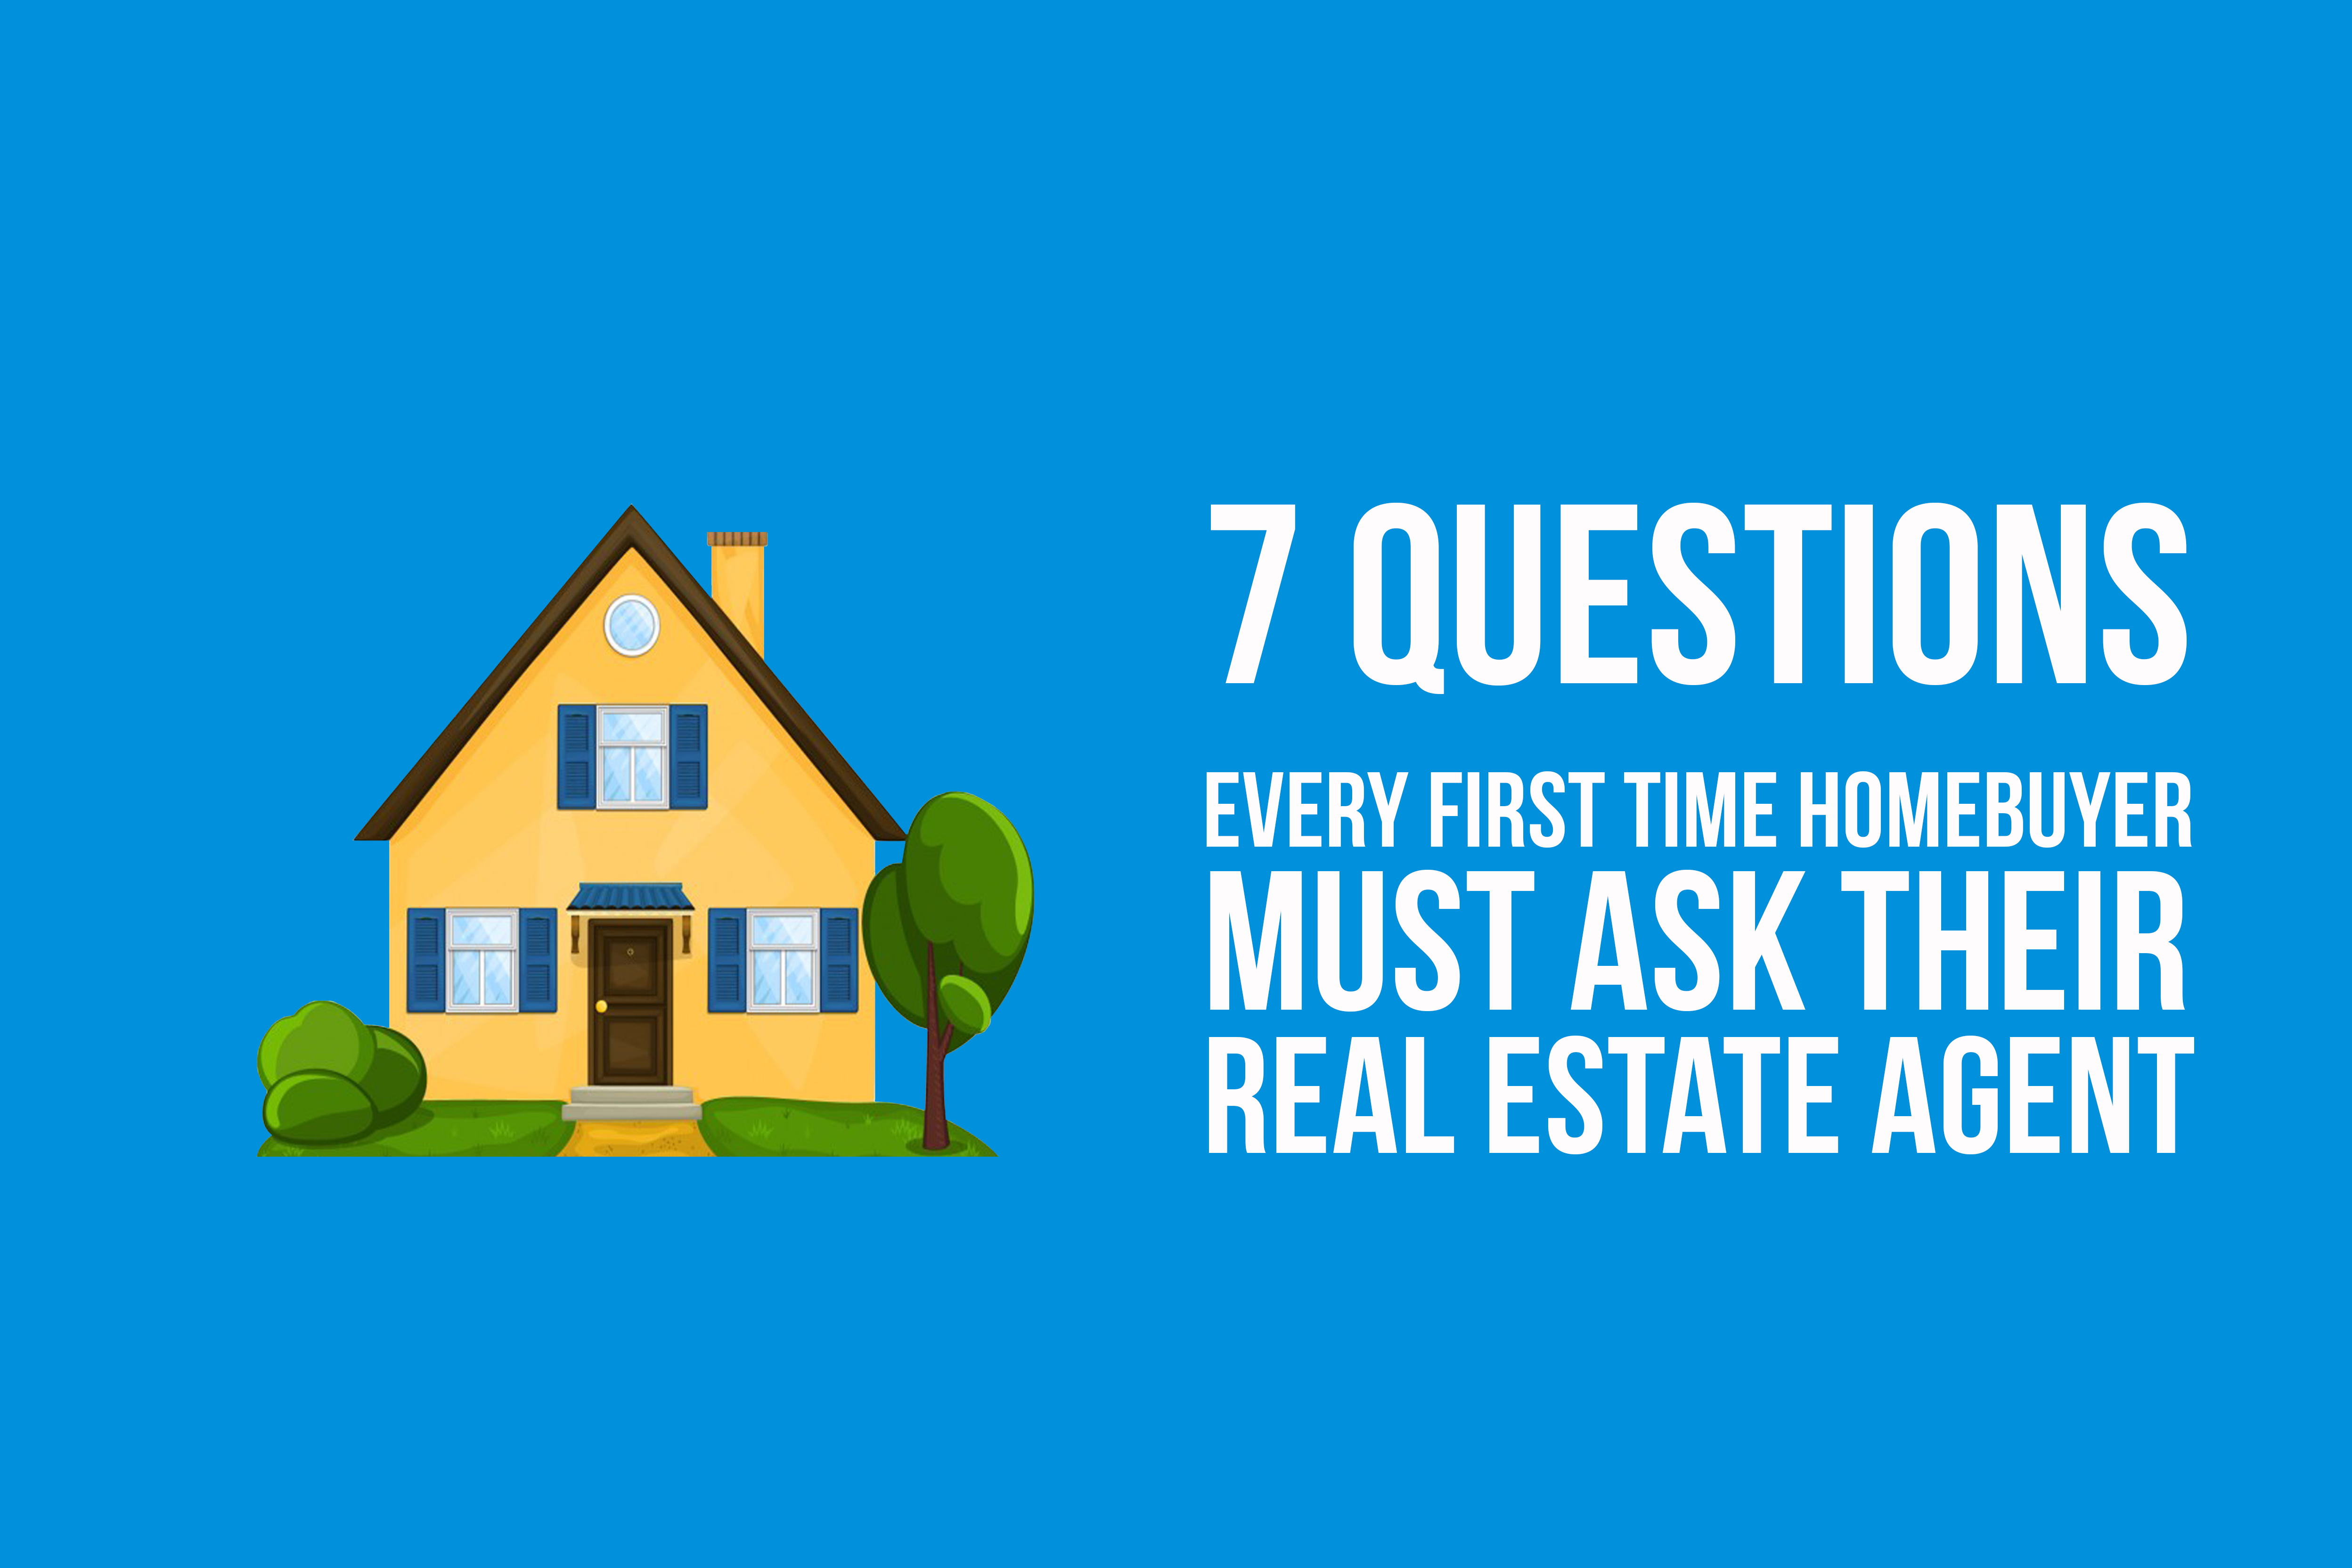 7 Questions Every First Time Homebuyer Must Ask Real Estate Agent